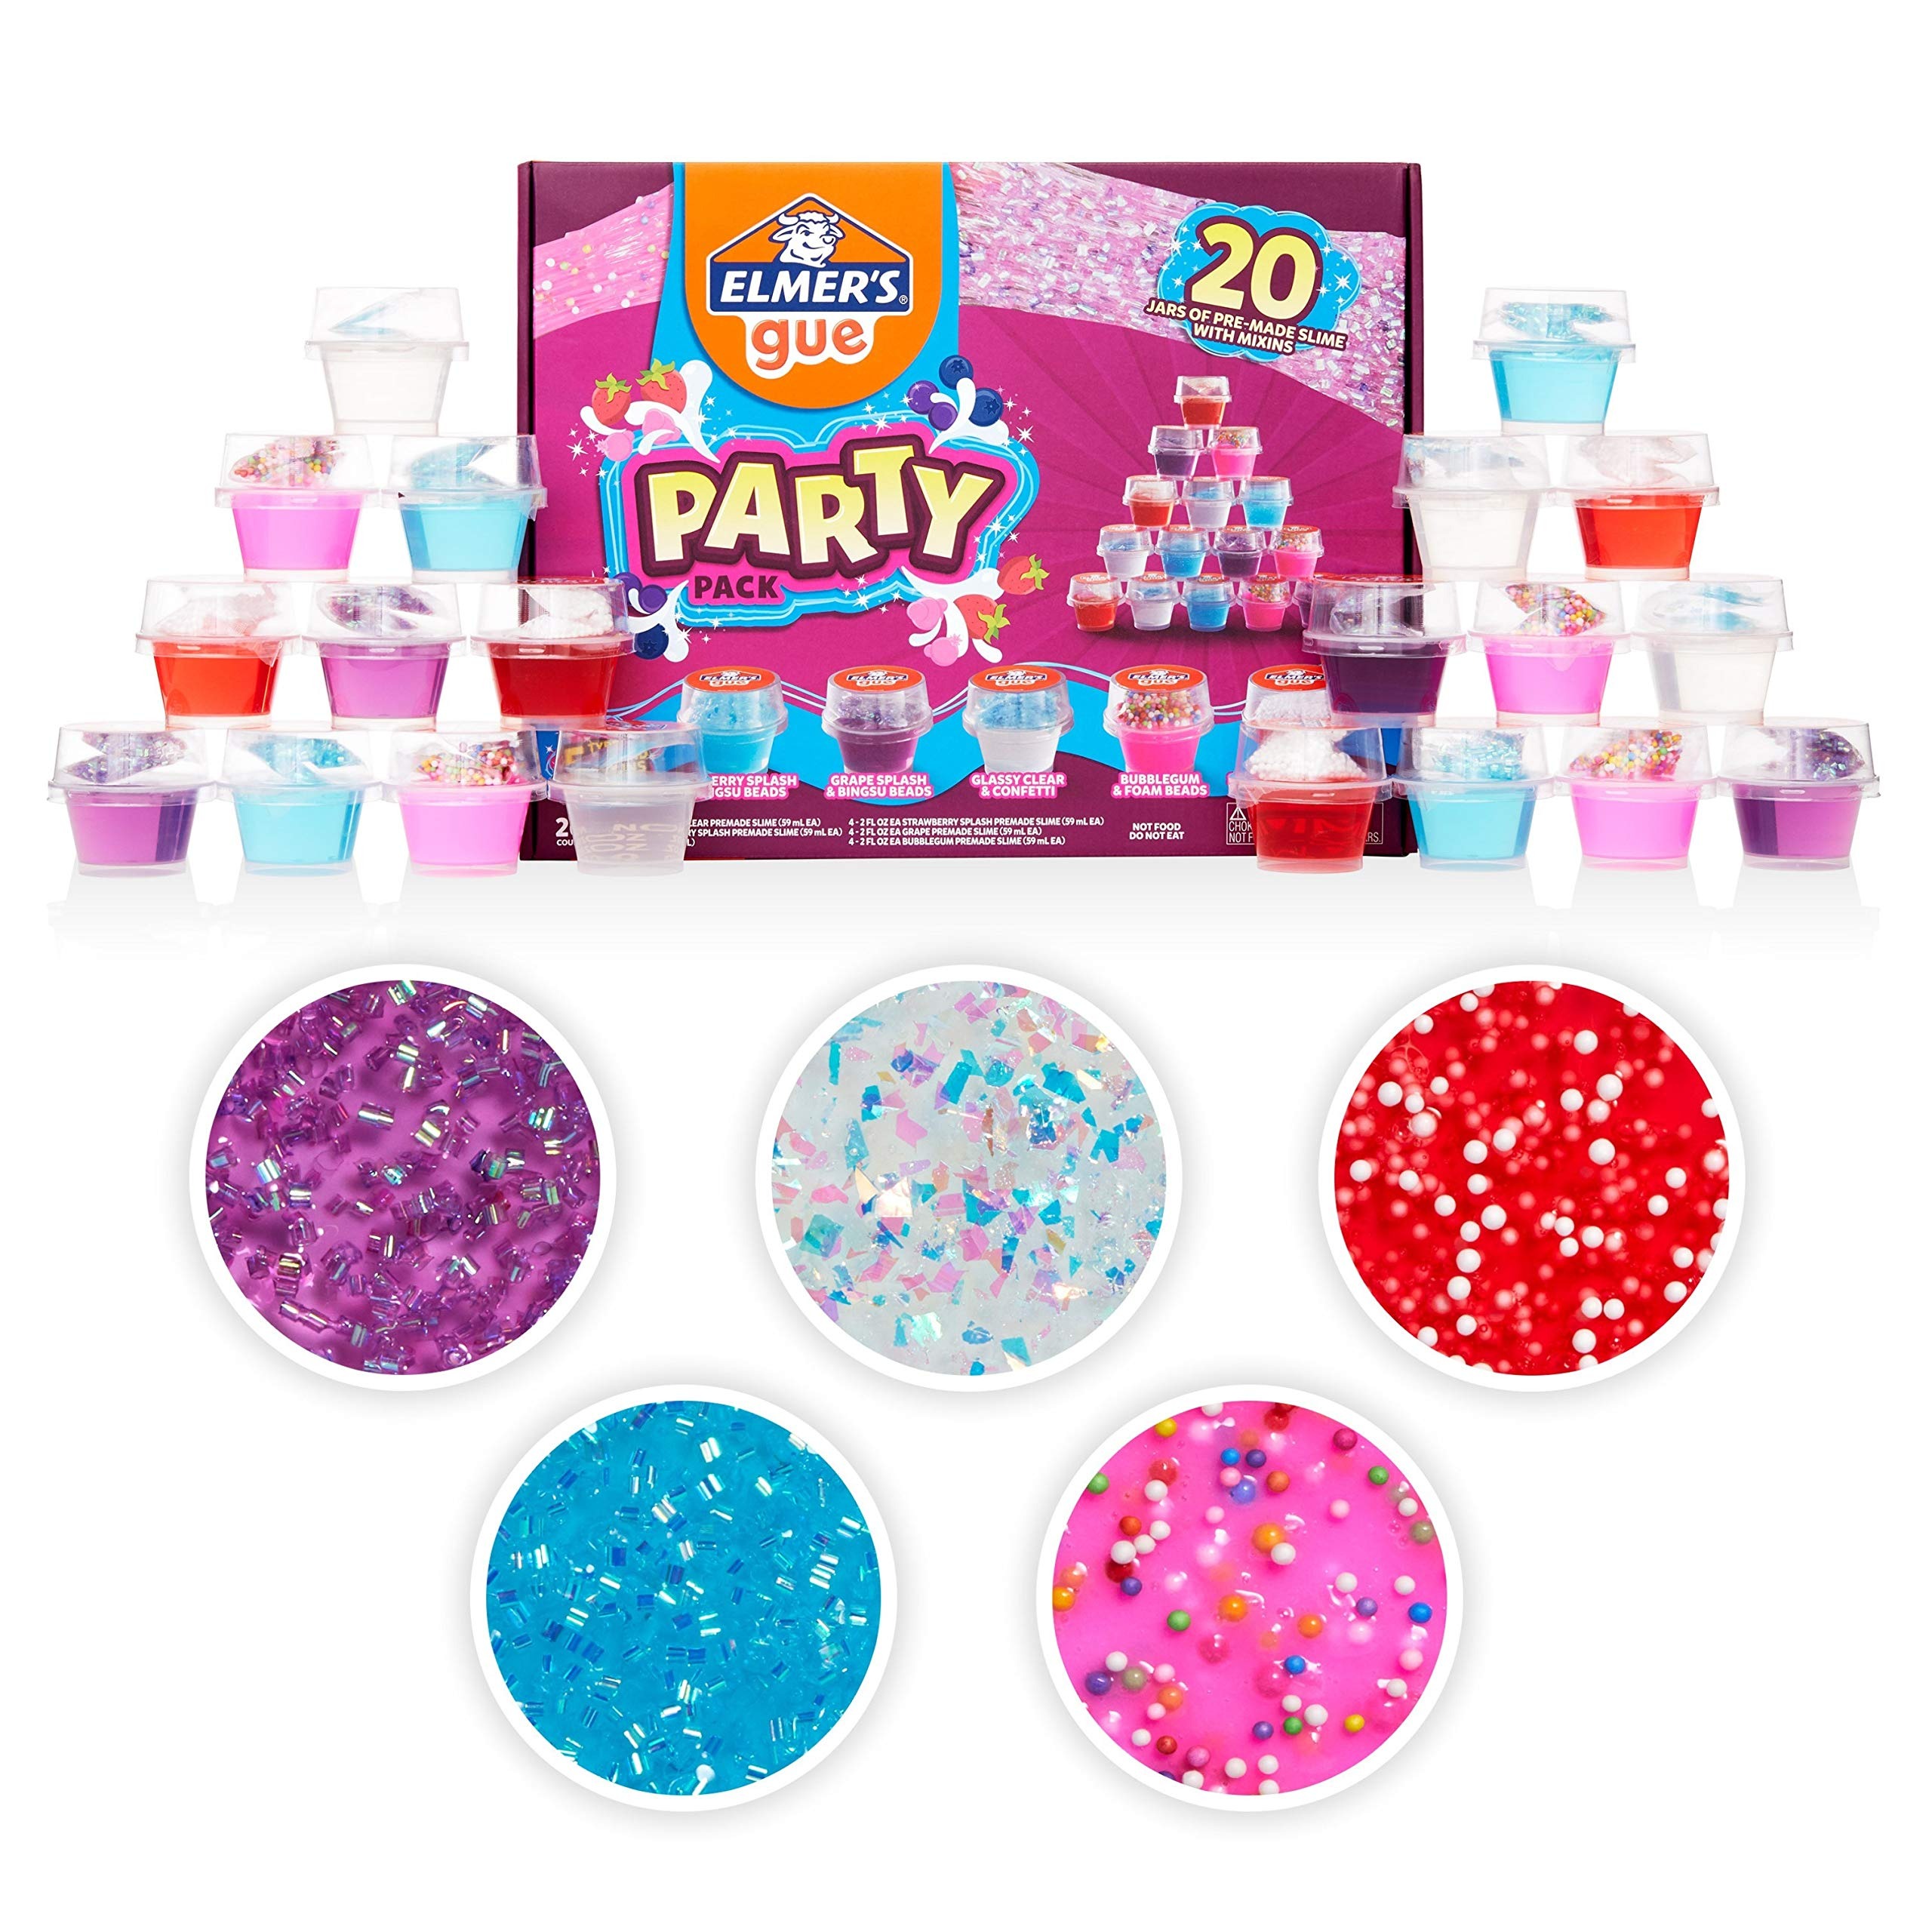 Elmer's Gue Premade Slime, Slime Kit, Includes Fun, Unique Add-Ins, Party Pack, 20 Count